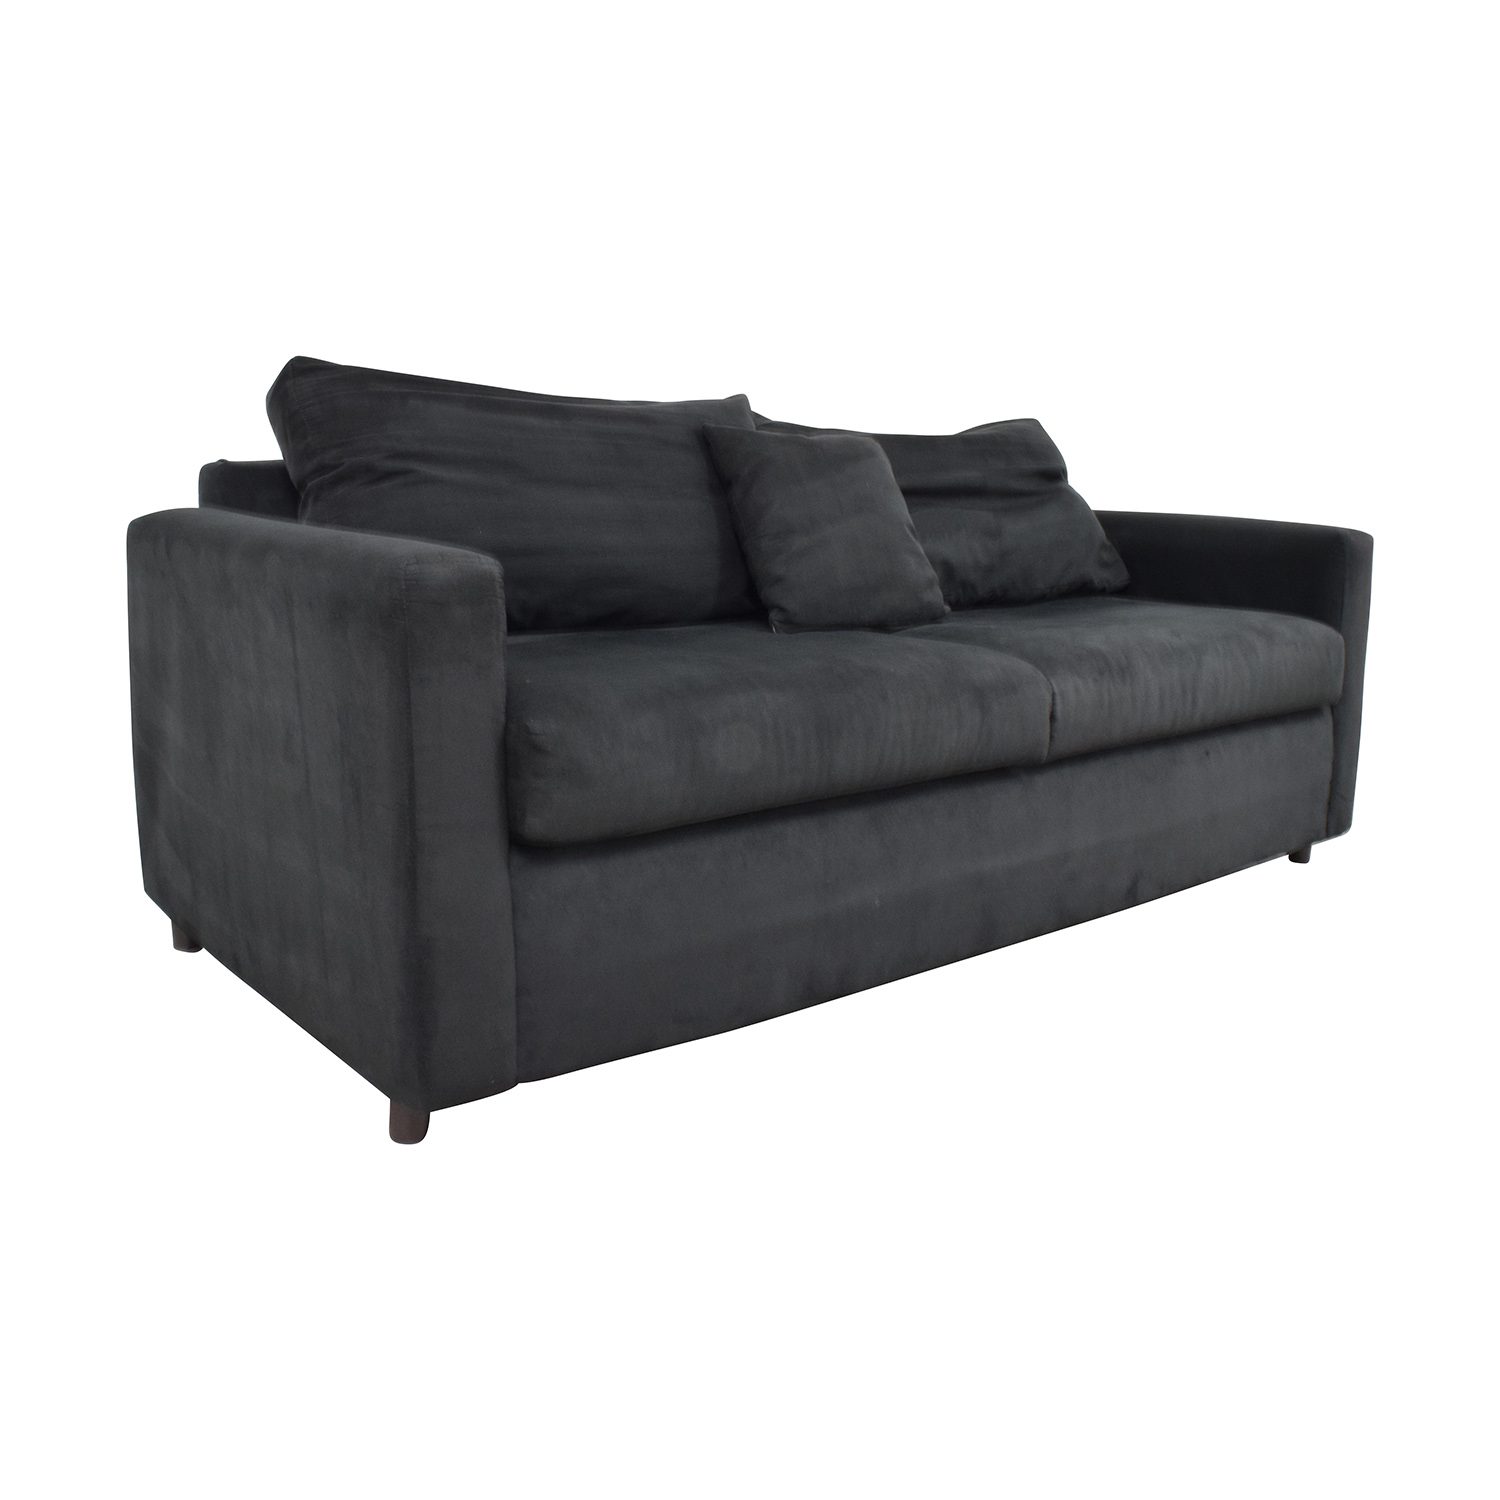 Sofa For Sale Online 78 Off Bob S Discount Furniture Bob S Furniture Black Micro Suede Couch Sofas